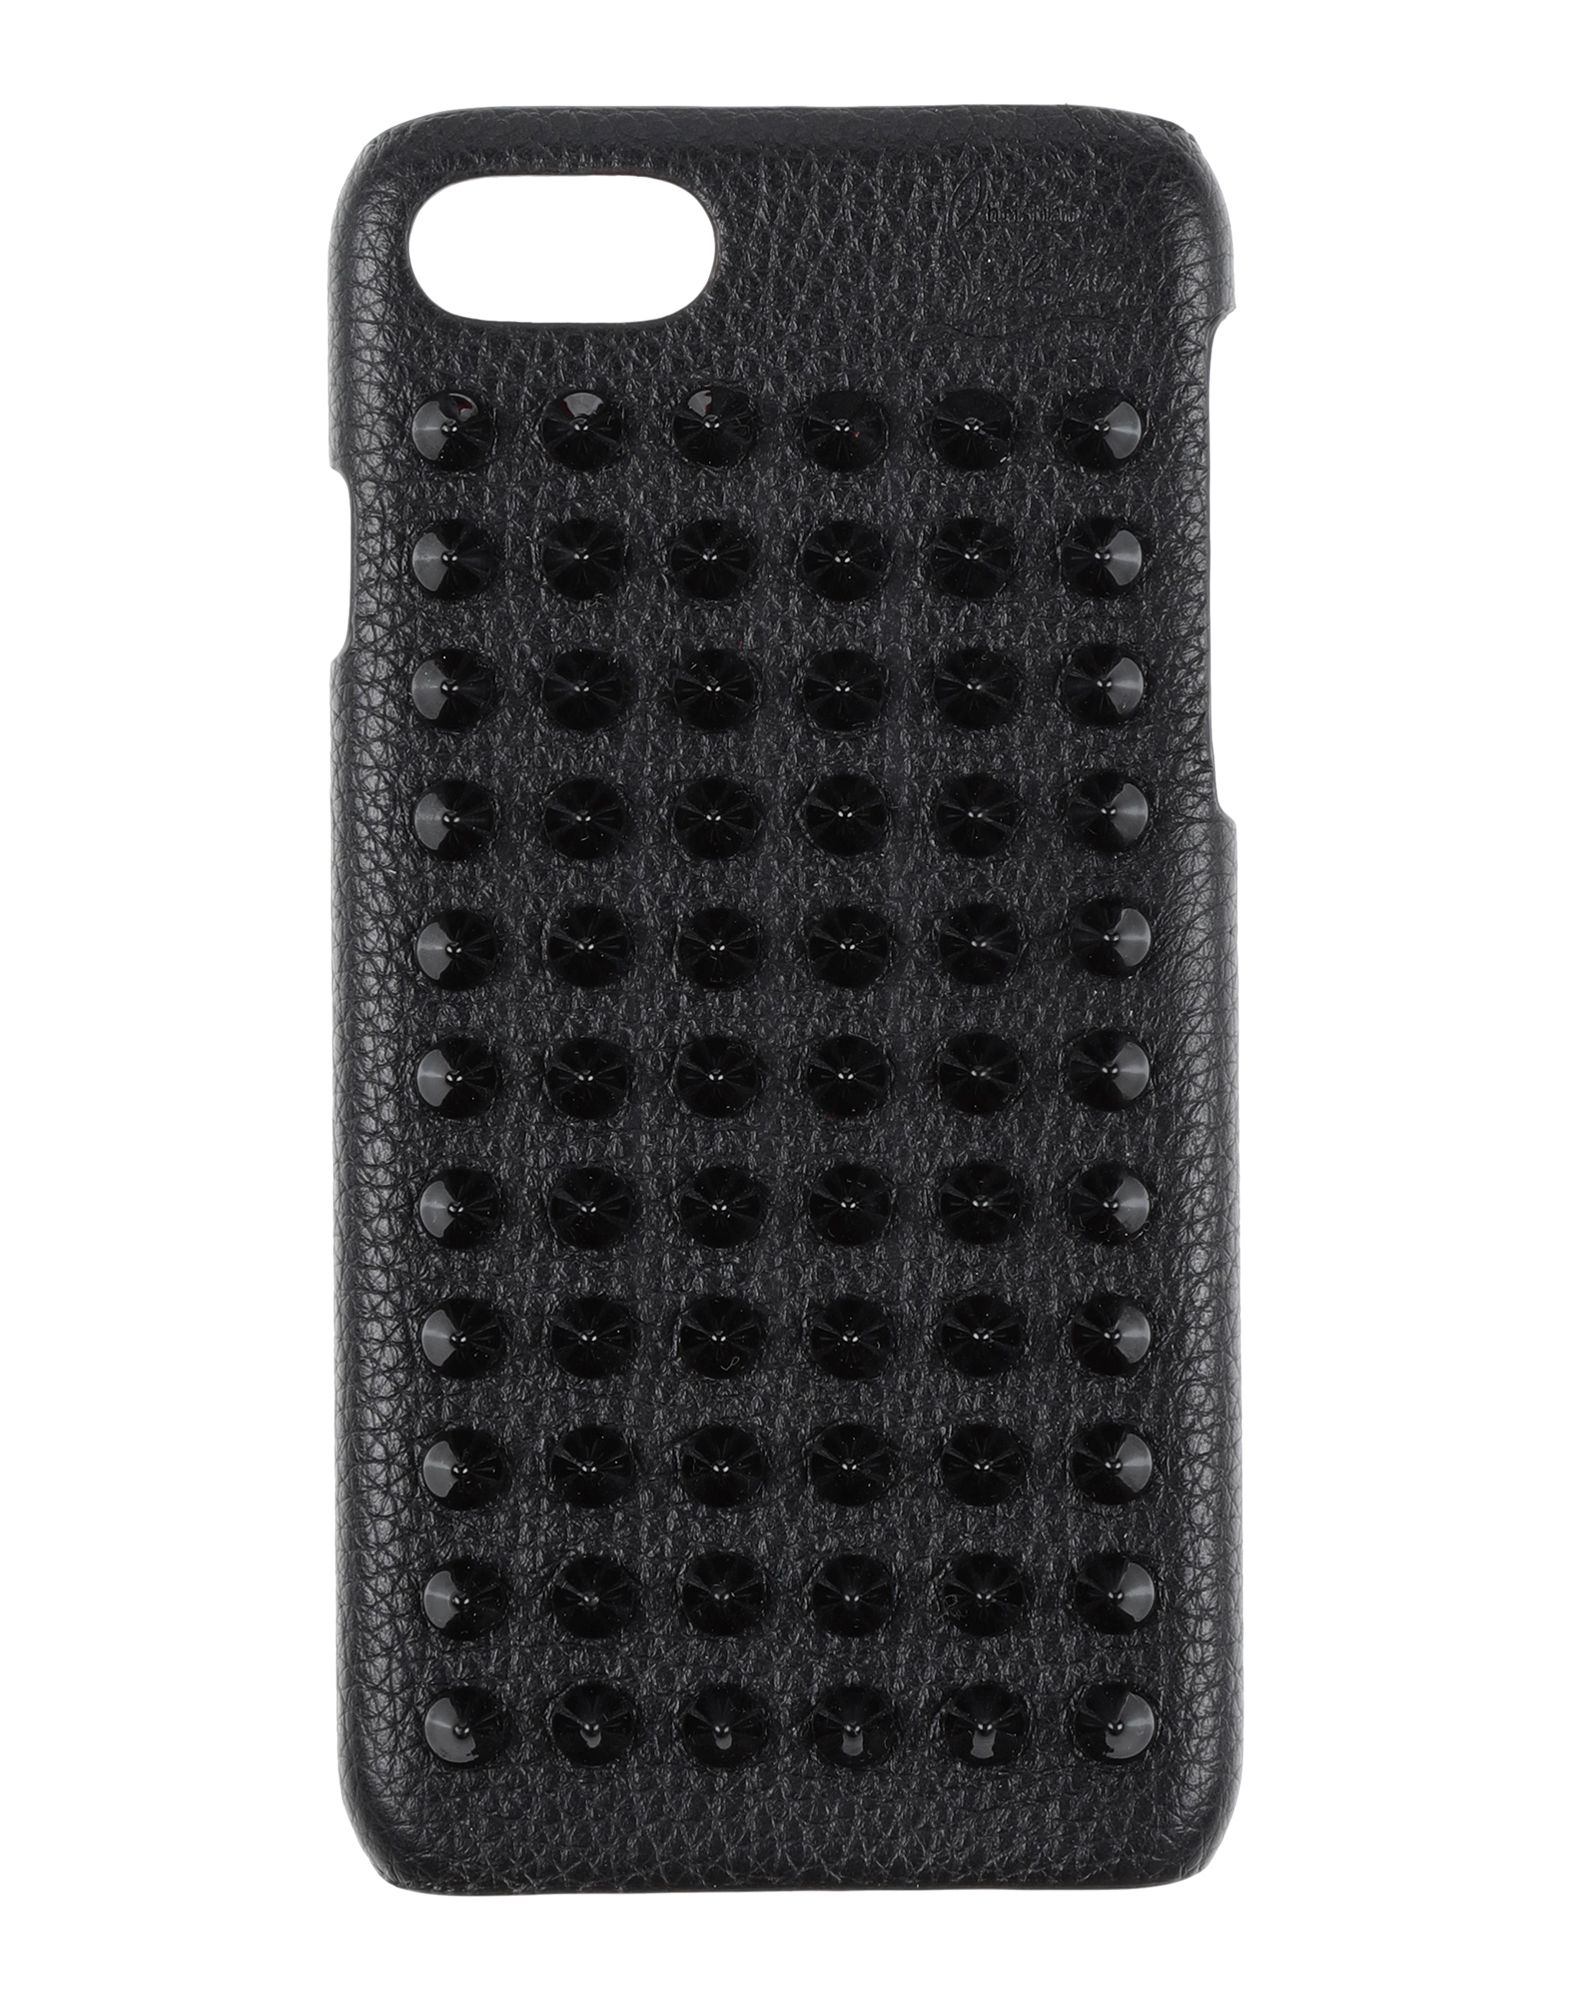 CHRISTIAN LOUBOUTIN Covers & Cases. iphone 7 cover, leather, logo, studs, solid color, contains non-textile parts of animal origin, textured leather. Soft Leather